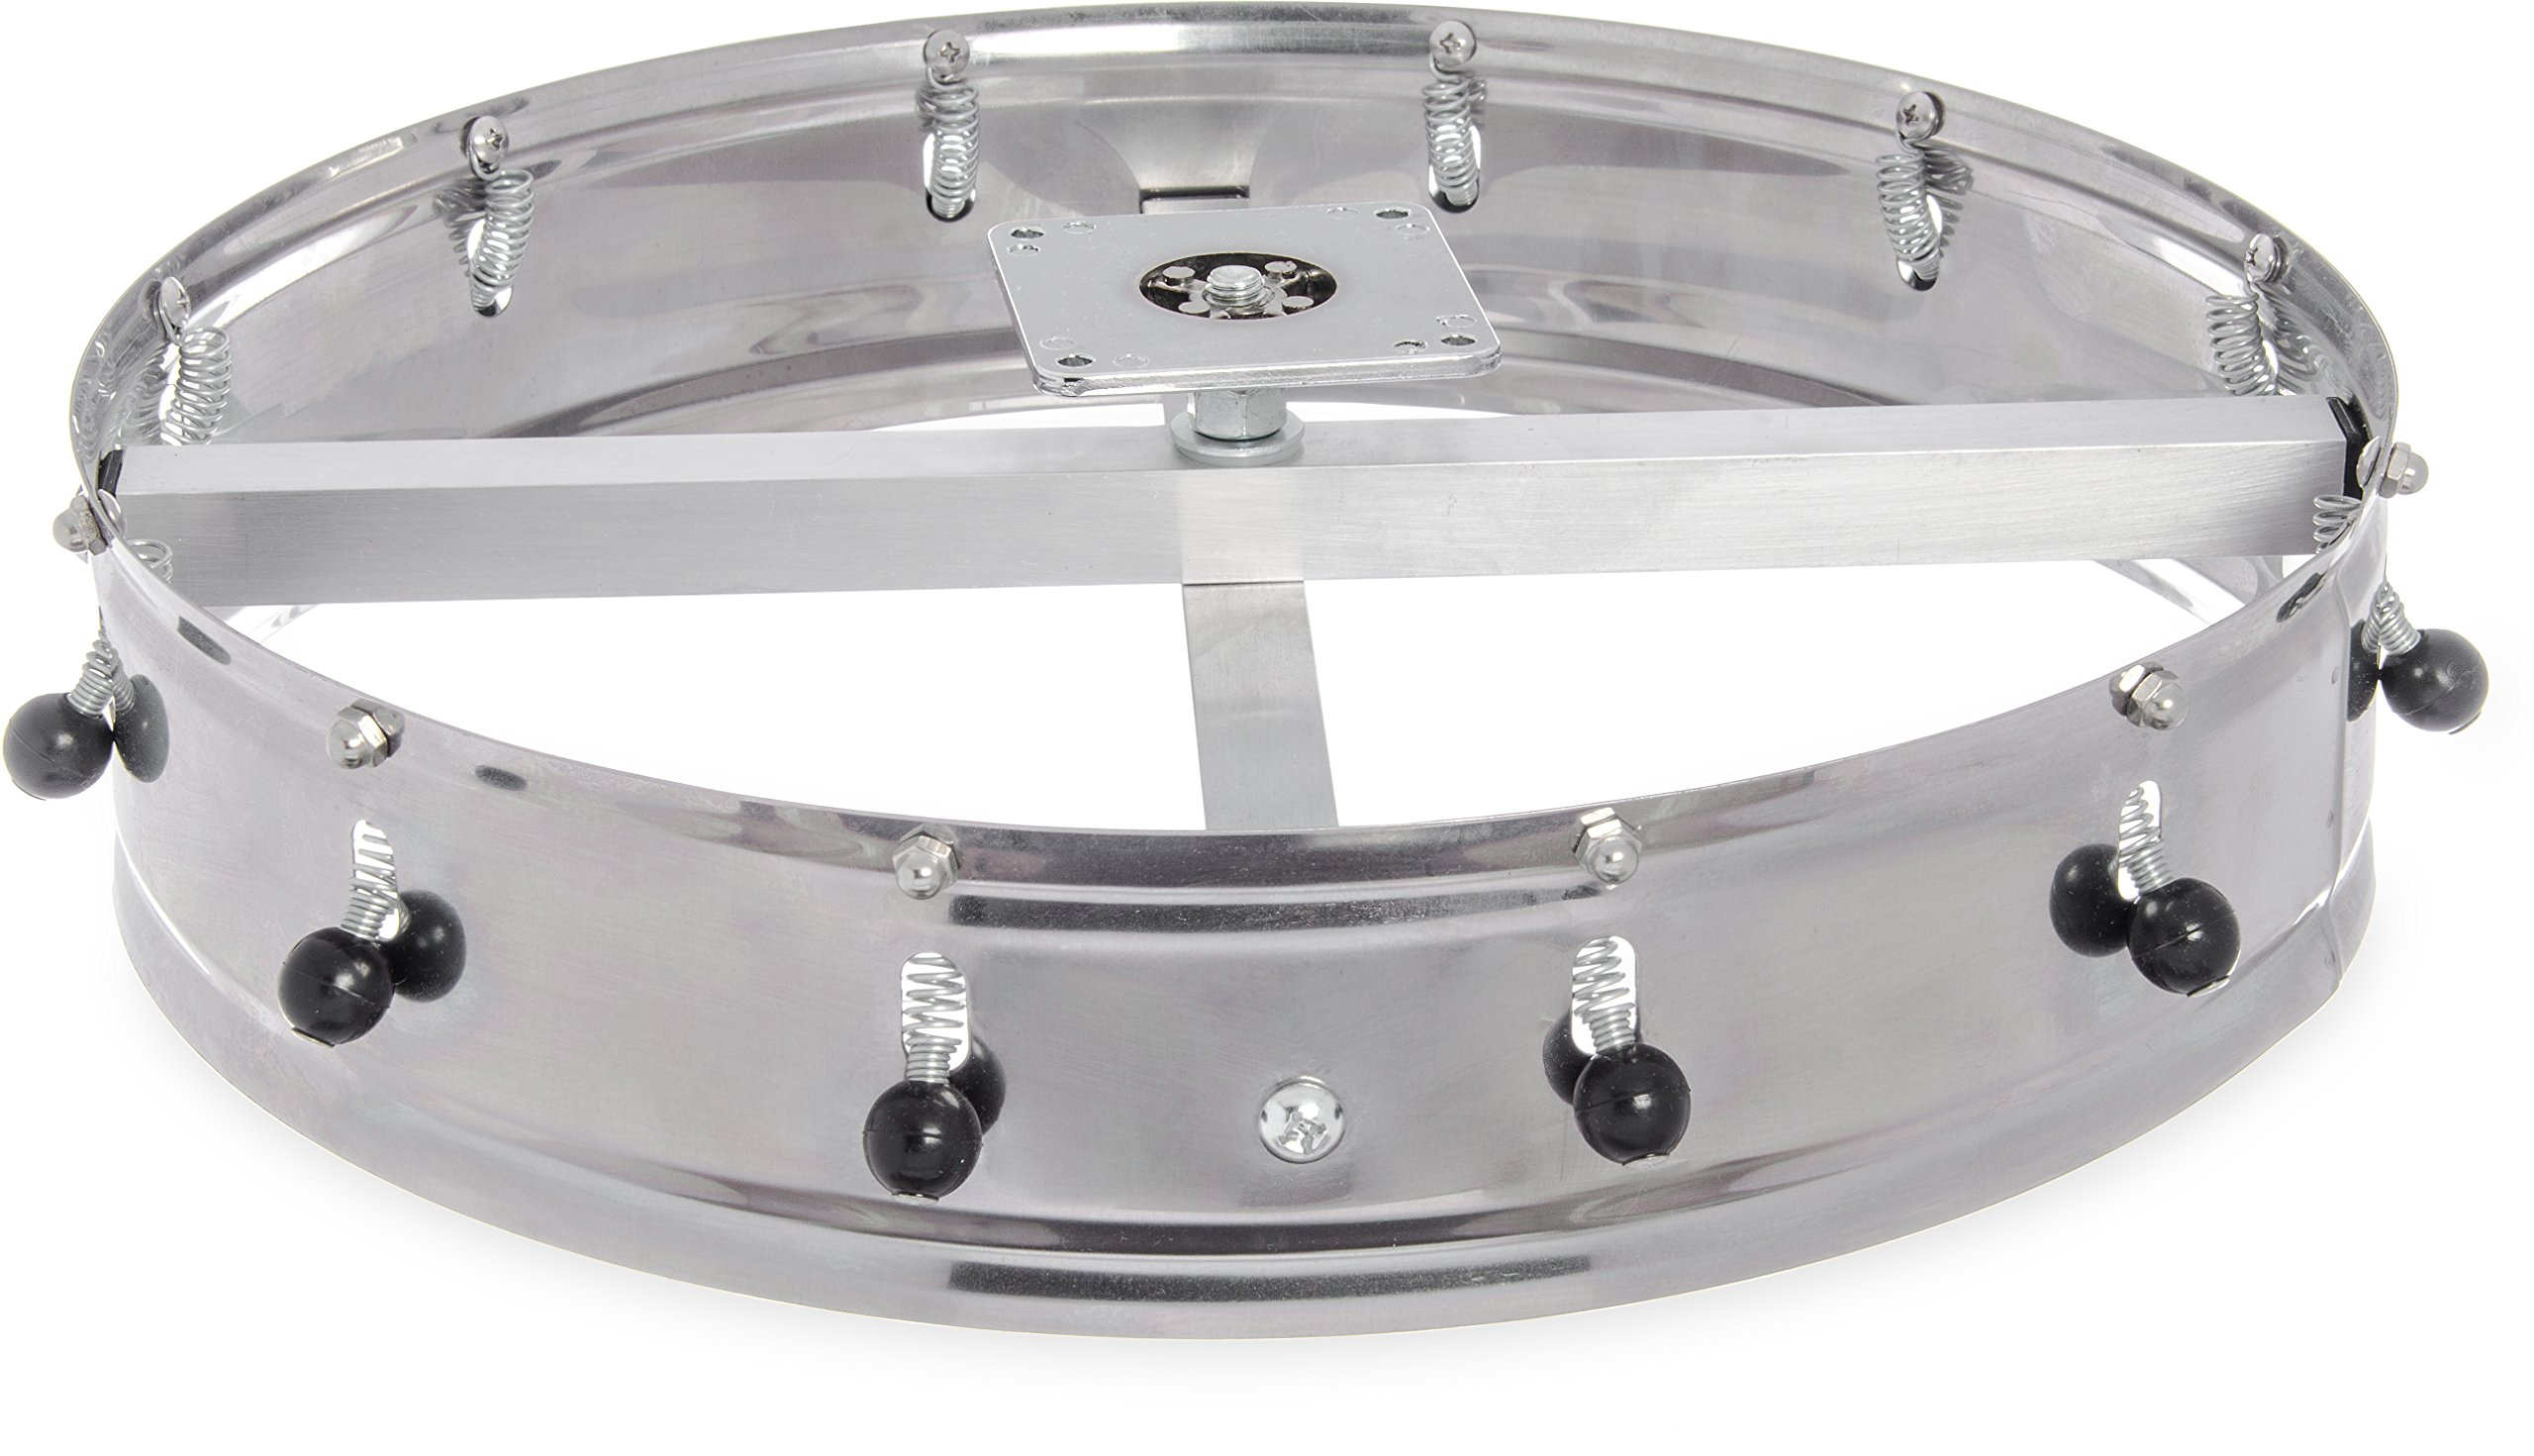 Carlisle 3812CH Stainless Steel Ceiling-Mount Order Wheel with 12 Clips, 14'' Dia. x 4-1/2'' H